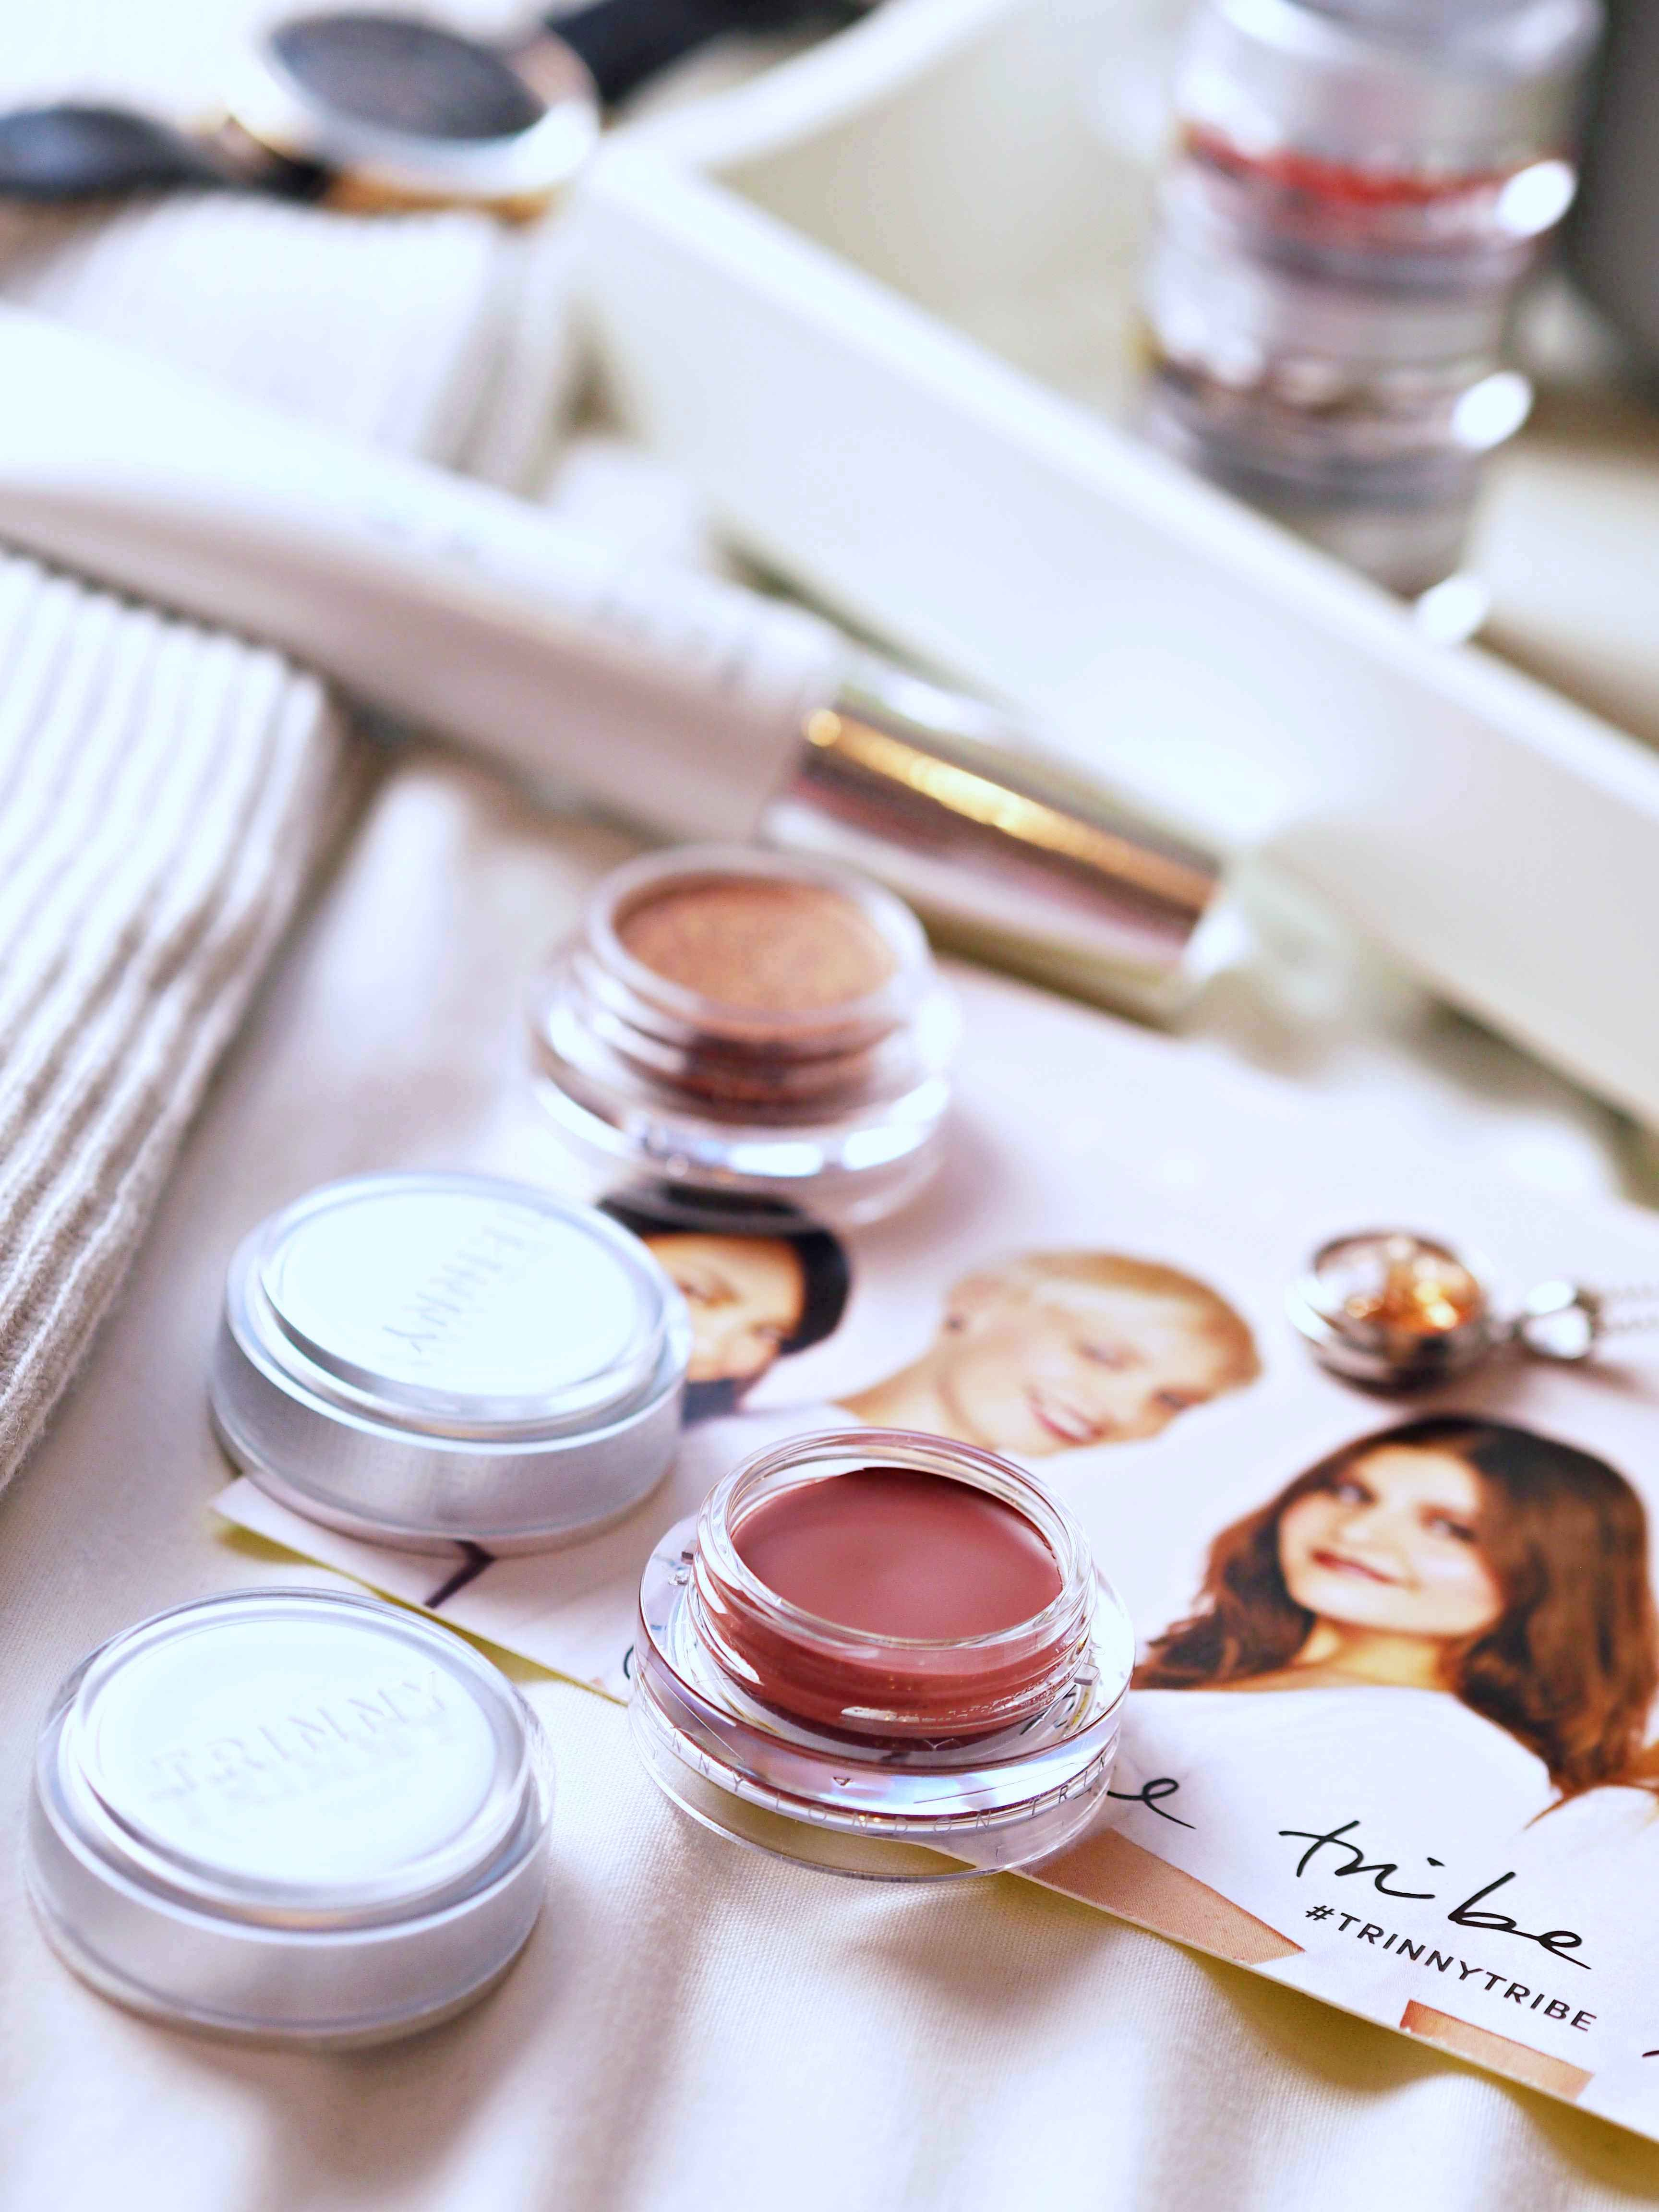 Trinny London Be part of the Trinny Tribe London, Makeup